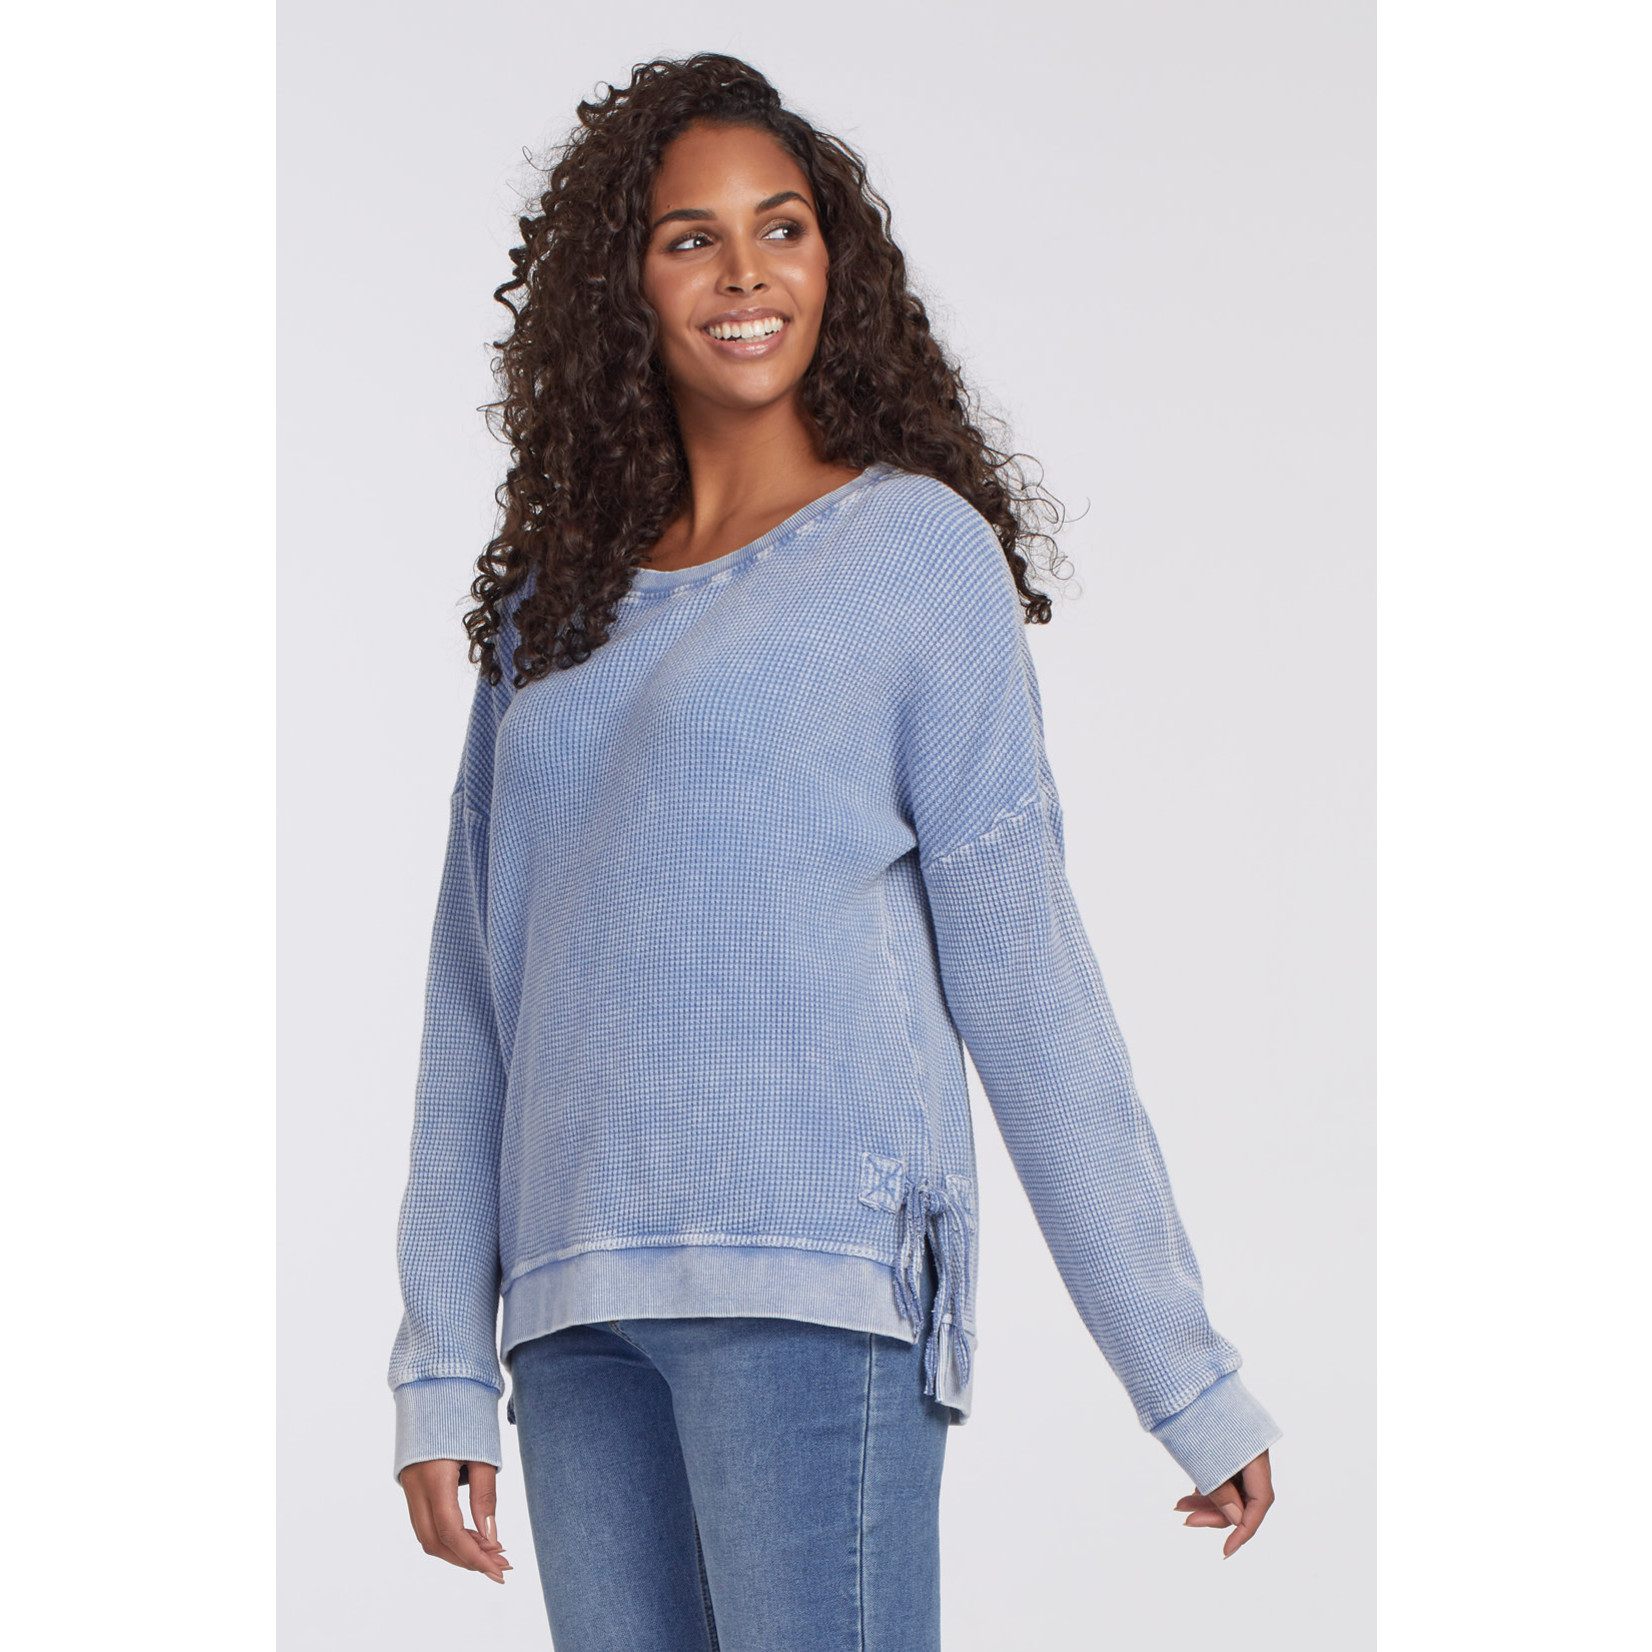 Tribal Crew Neck Top With Side Ties (2 Colors)